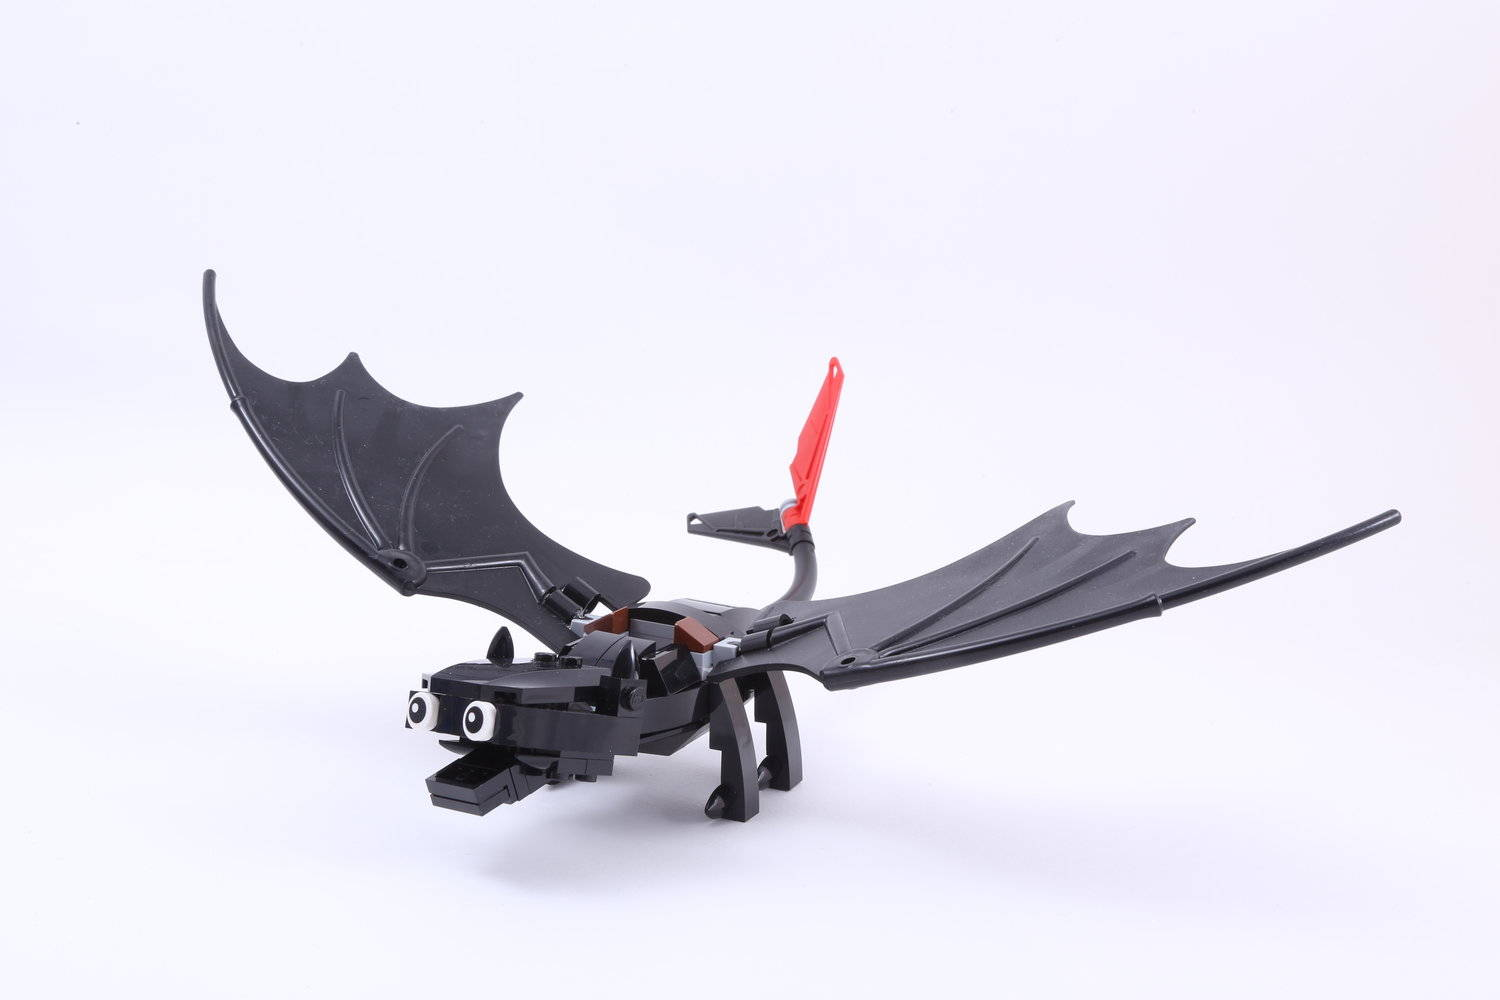 LEGO Night fury (Toothless)